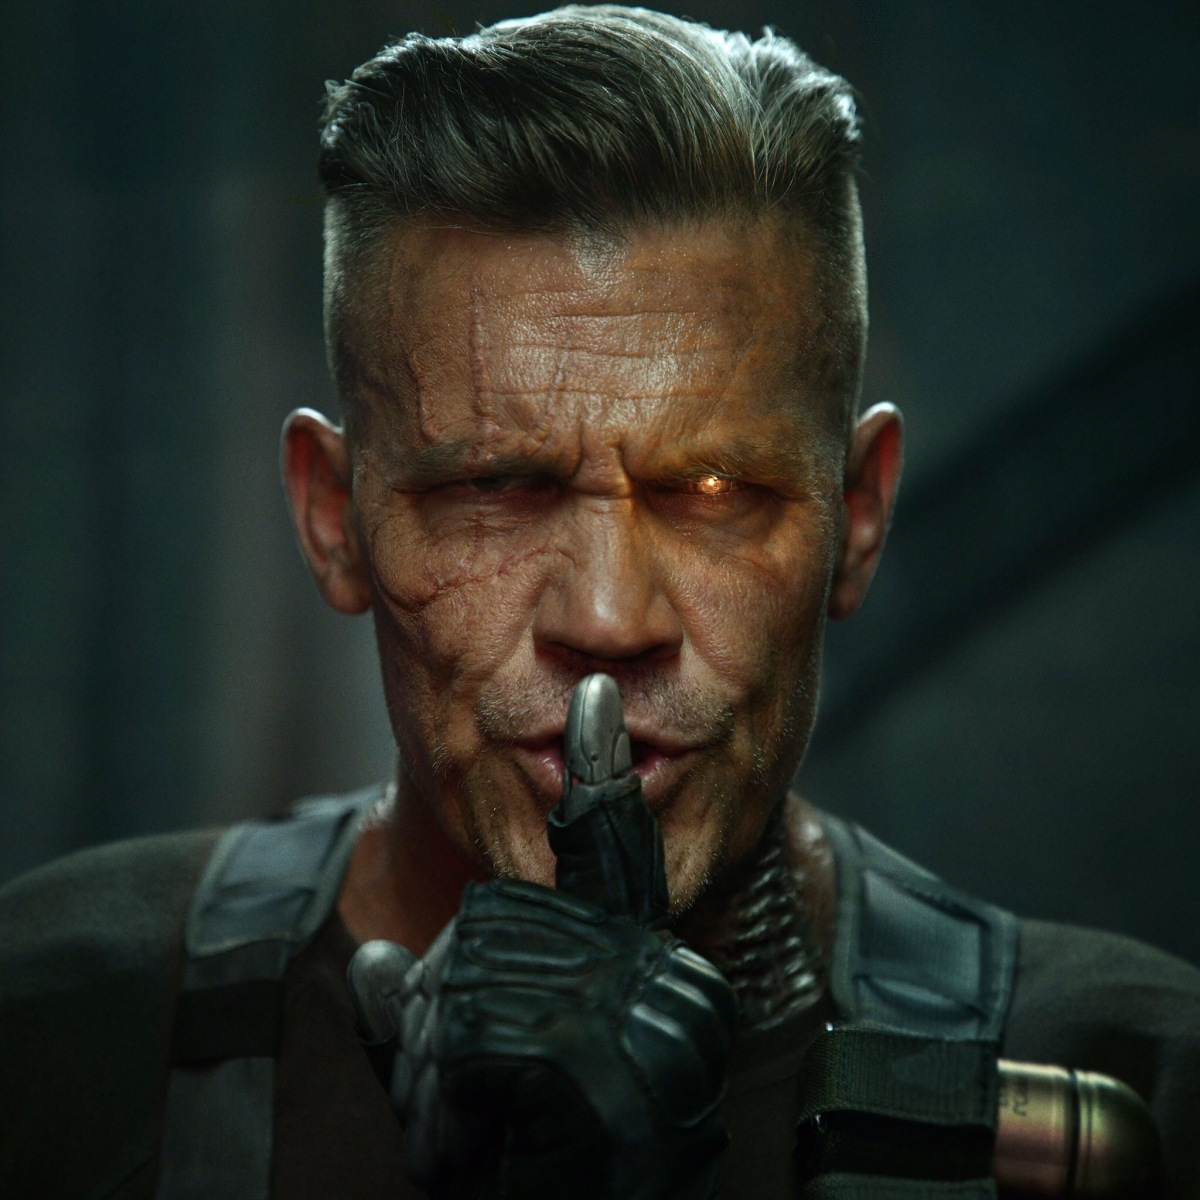 Check out Josh Brolin as Cable in Deadpool 2